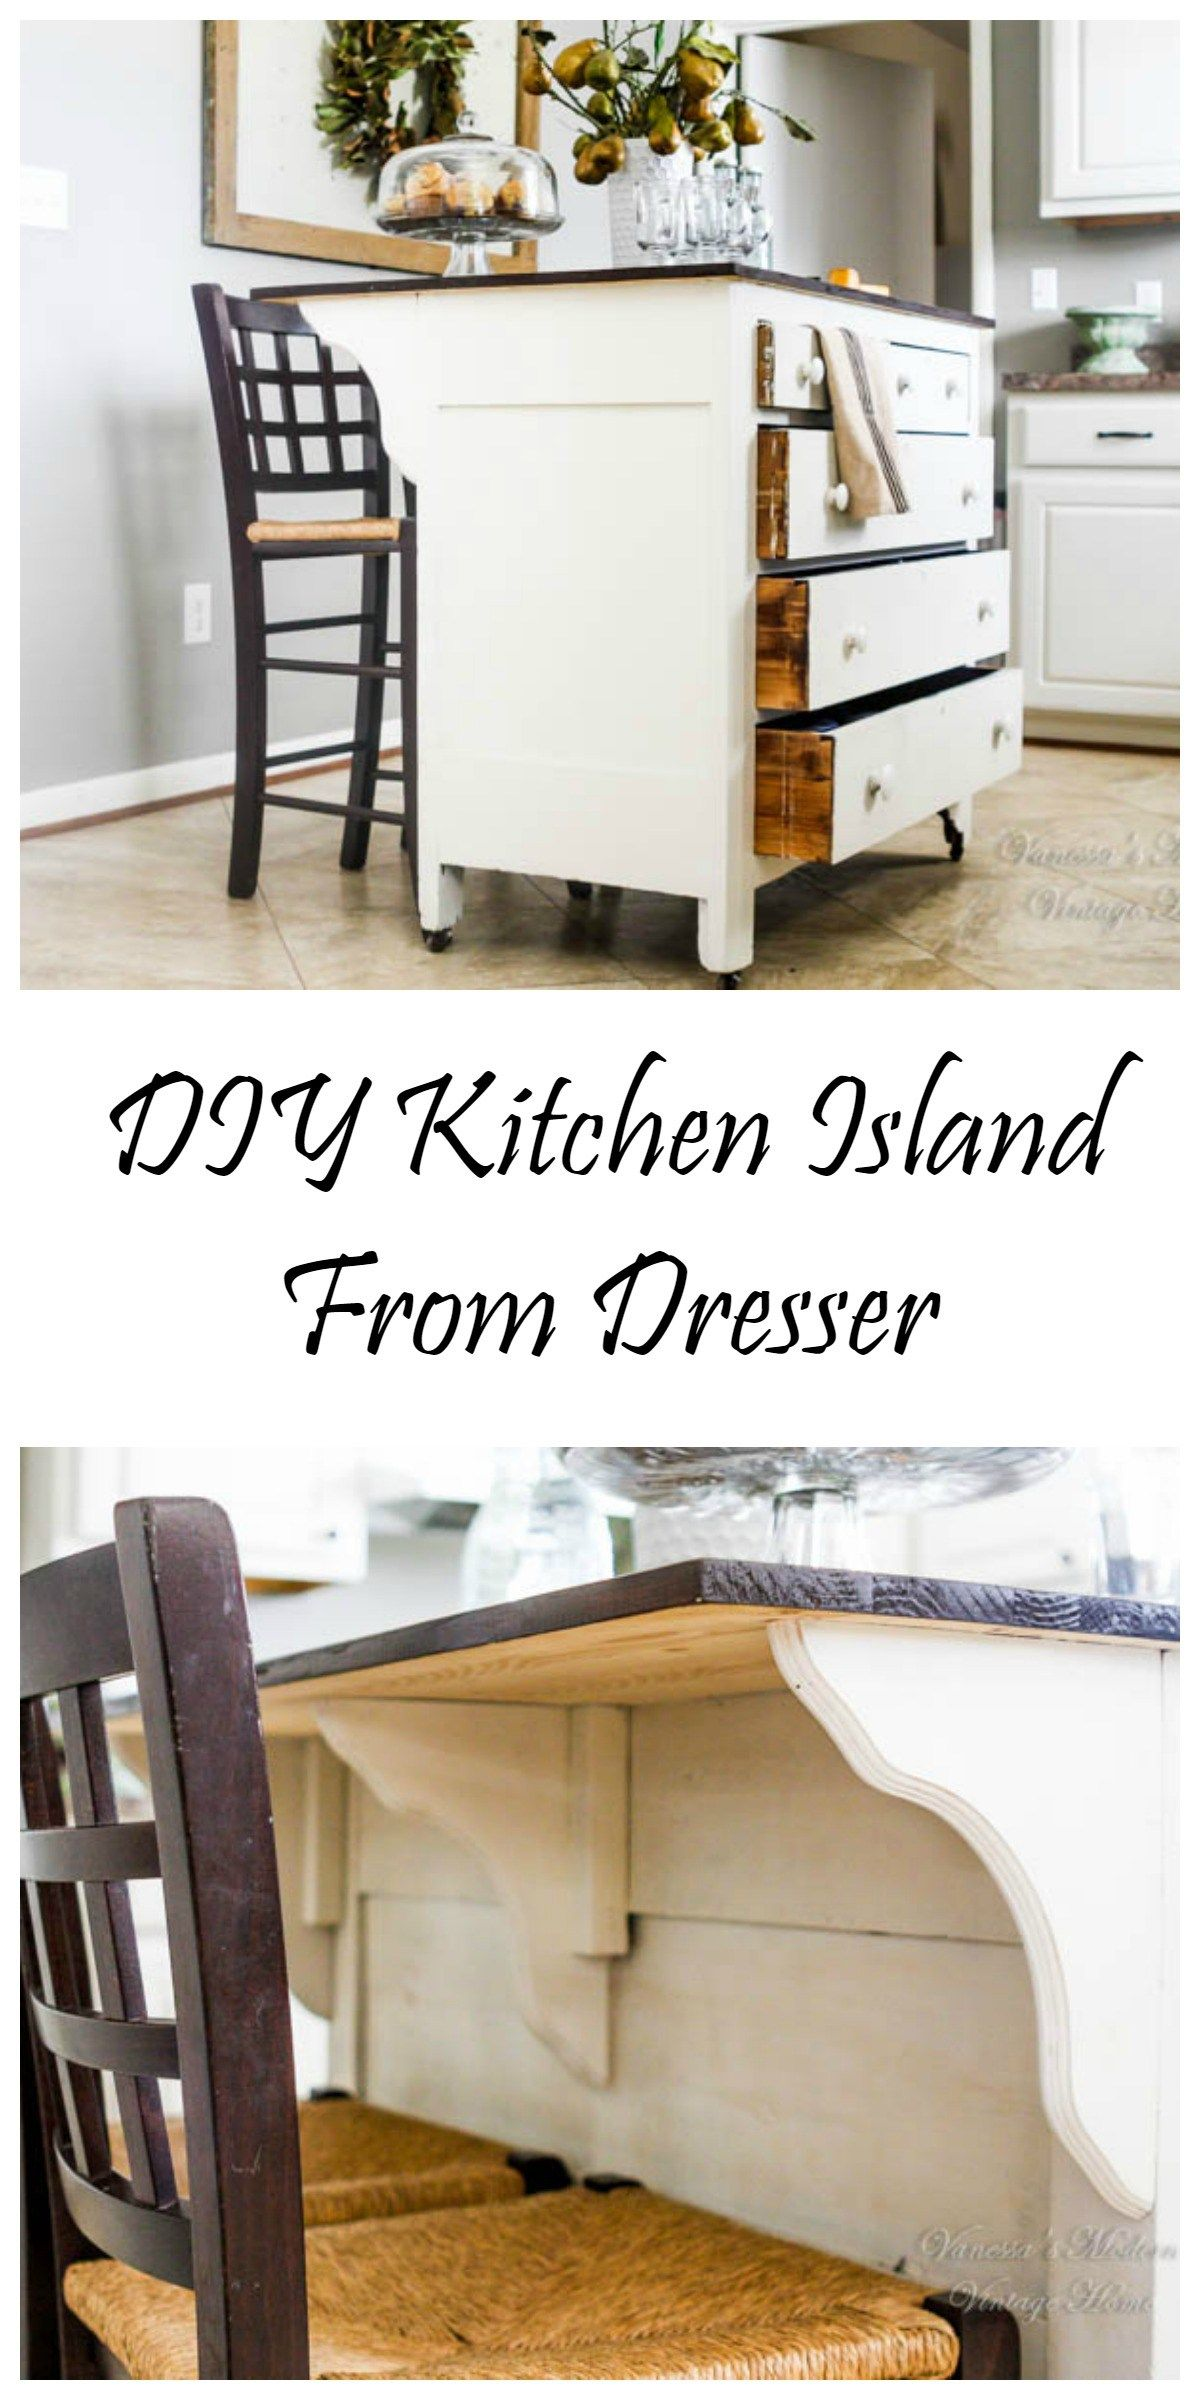 Need Kitchen Storage? Make a kitchen Island from a dresser | Dinge ...